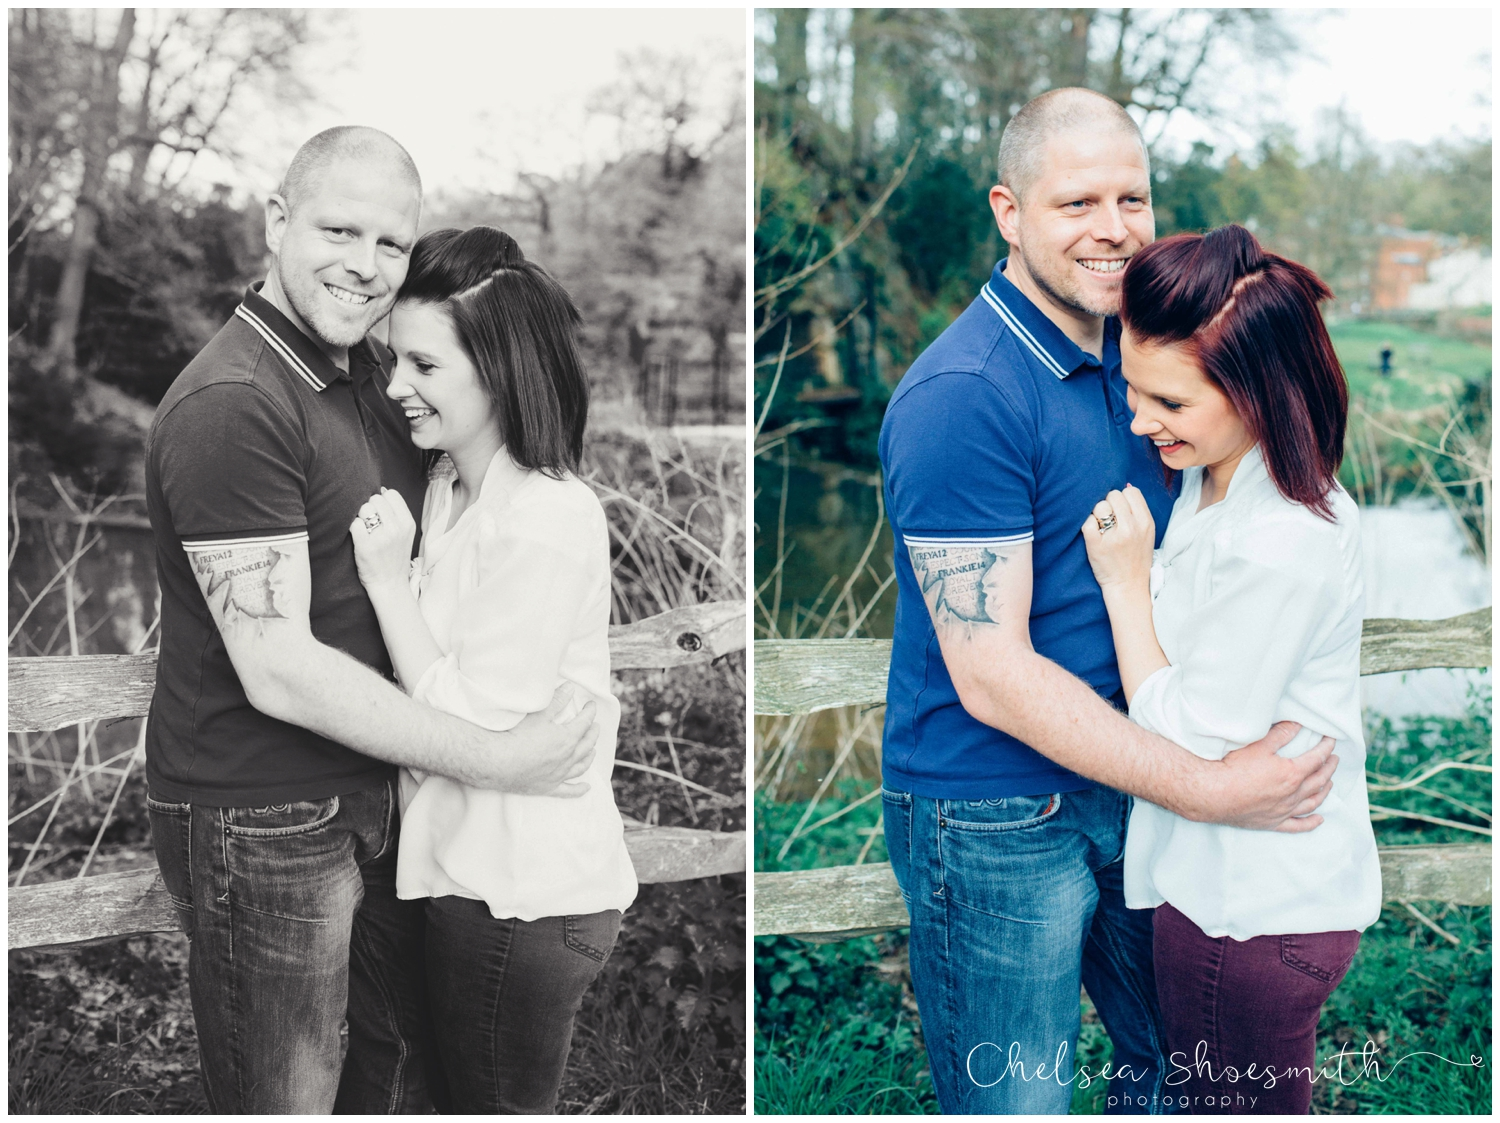 (36 of 72) Rigby Family Portrait Photography Quarry Bank Mill Styal Chelsea Shoesmith photography